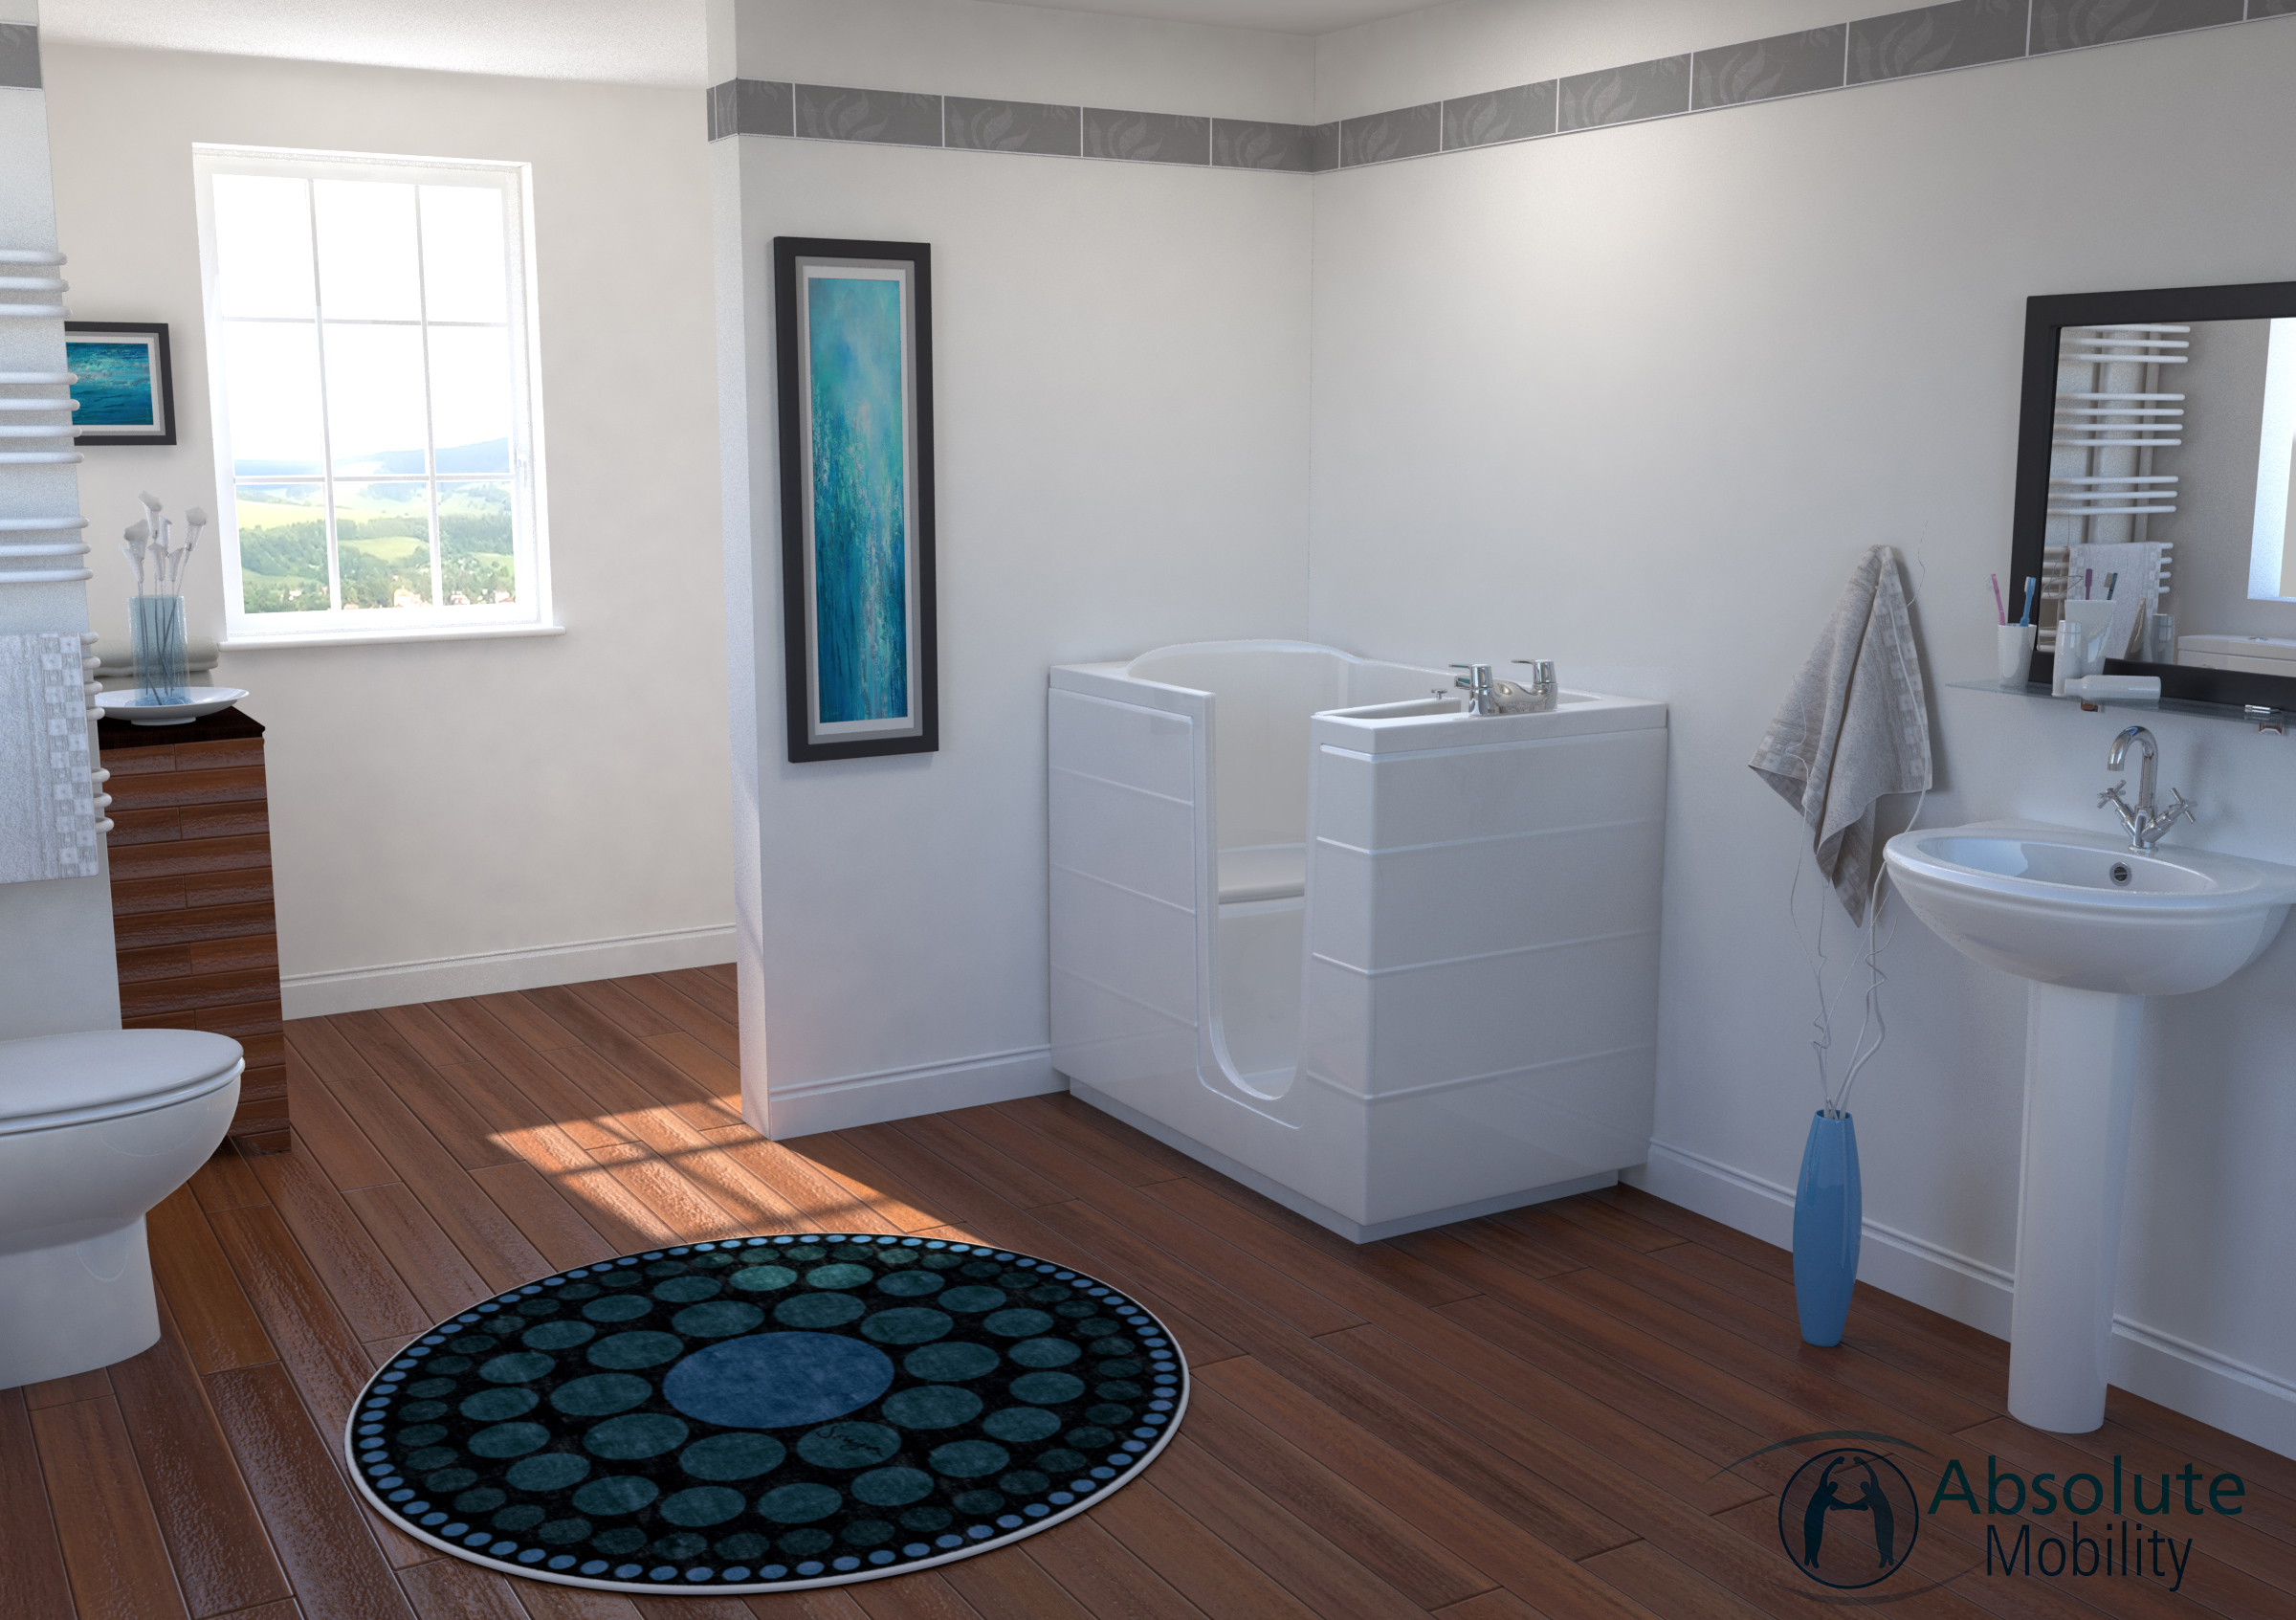 Tub Style Walk In Baths for the Disabled - Absolute Mobility